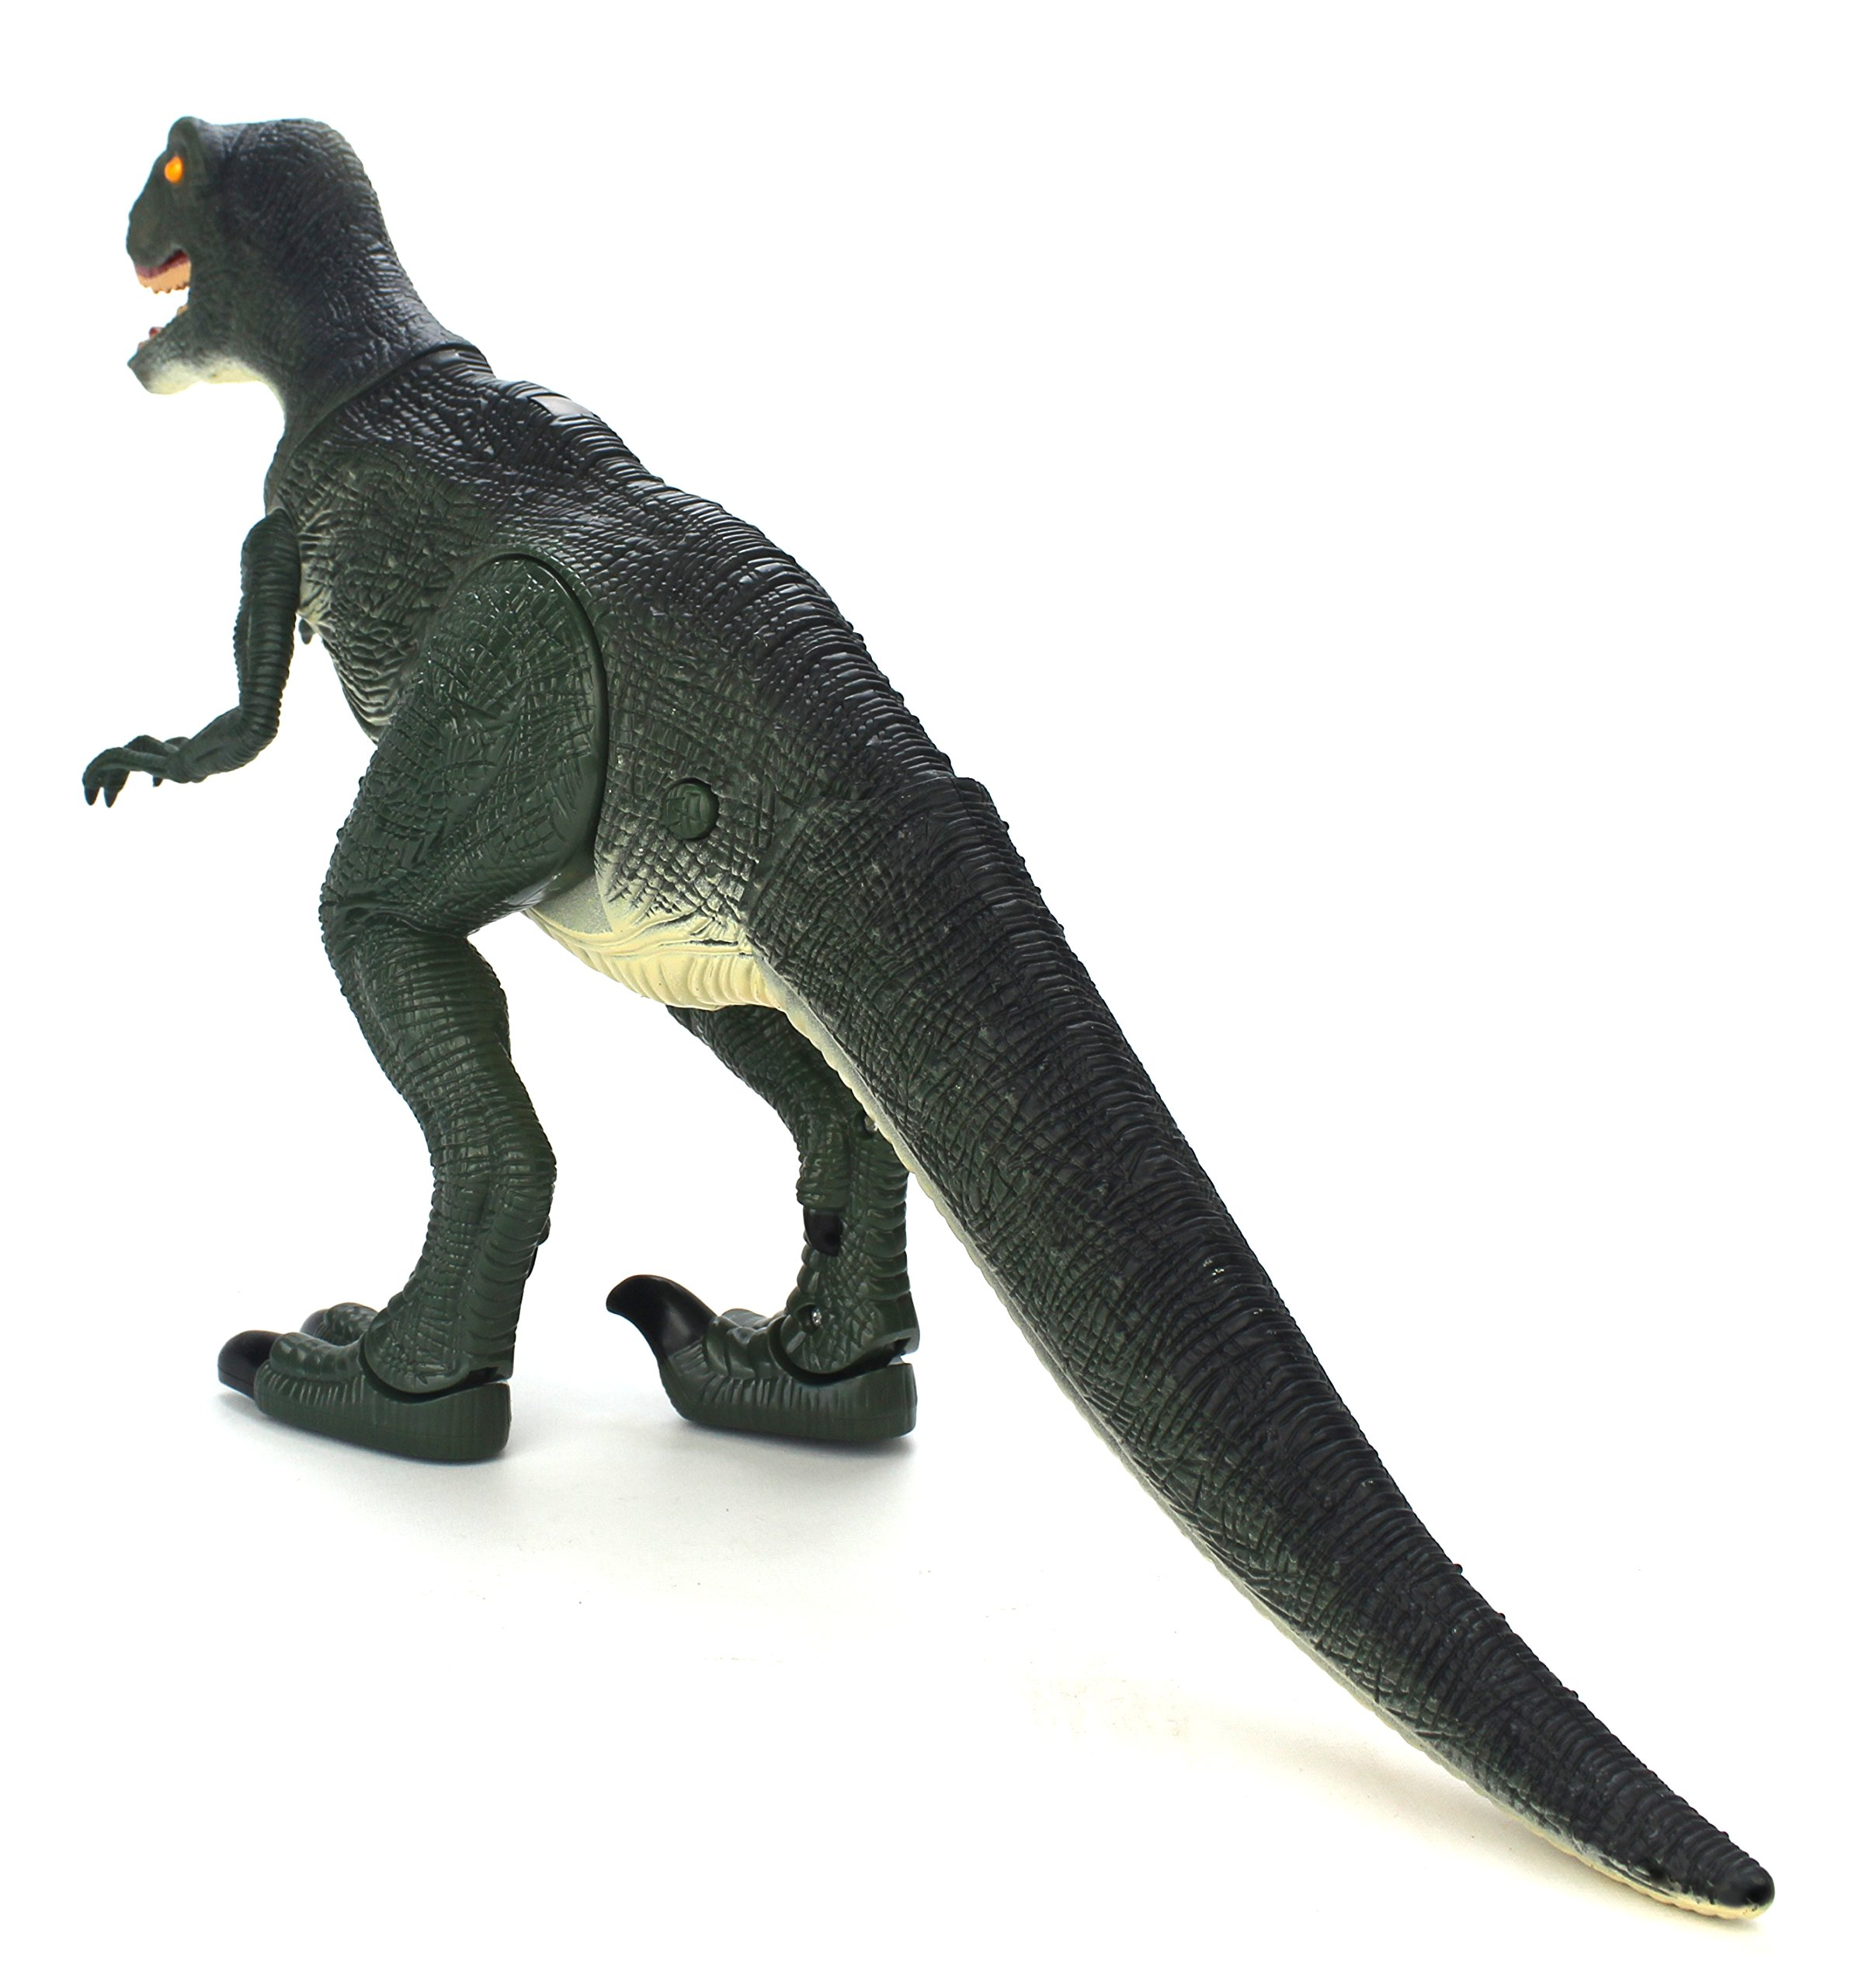 Dinosaur Planet Raptor Remote Controlled RC Battery Operated Toy Velociraptor Figure w/Shaking Head, Walking Movement, Light Up Eyes & Sounds by Velocity Toys (Image #4)